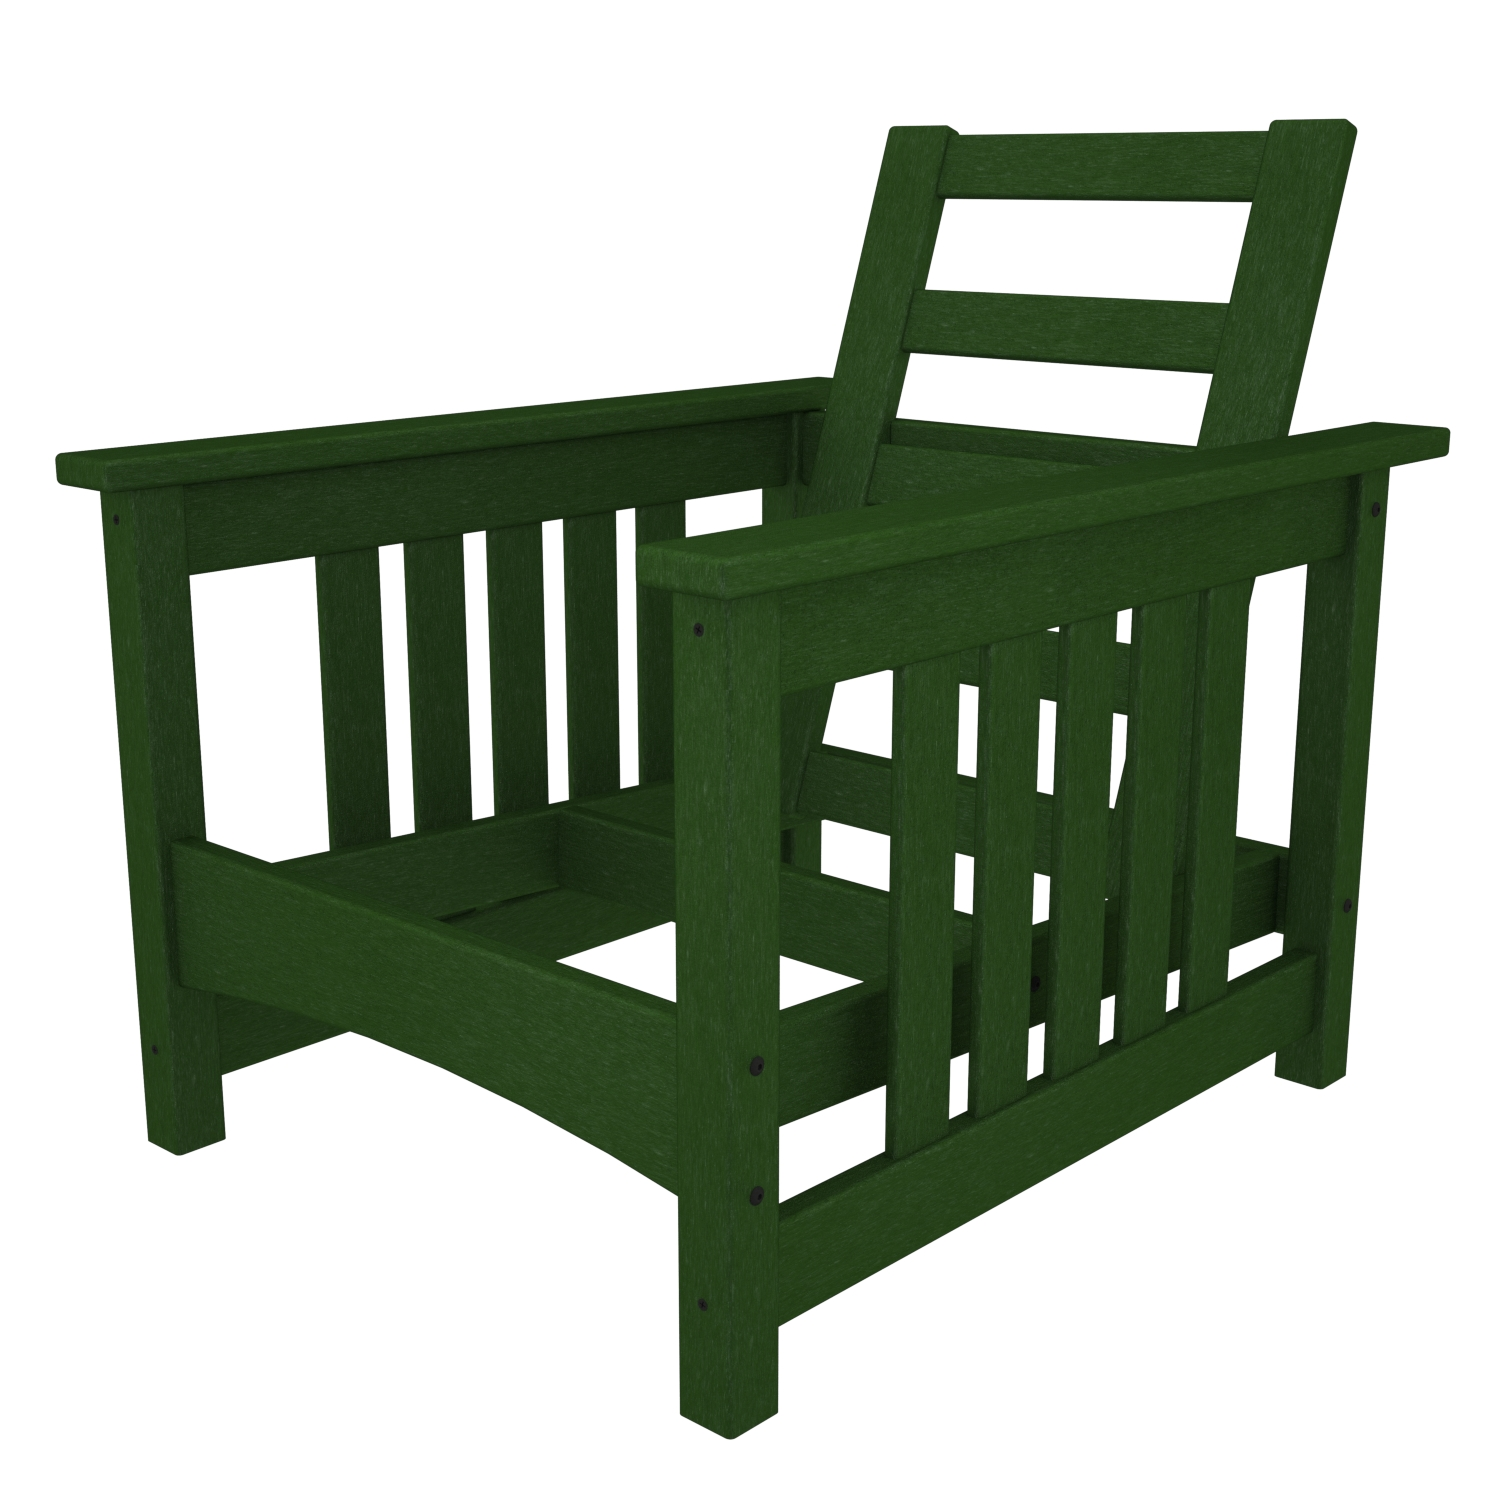 POLYWOOD CMC23GR Mission Chair in Green